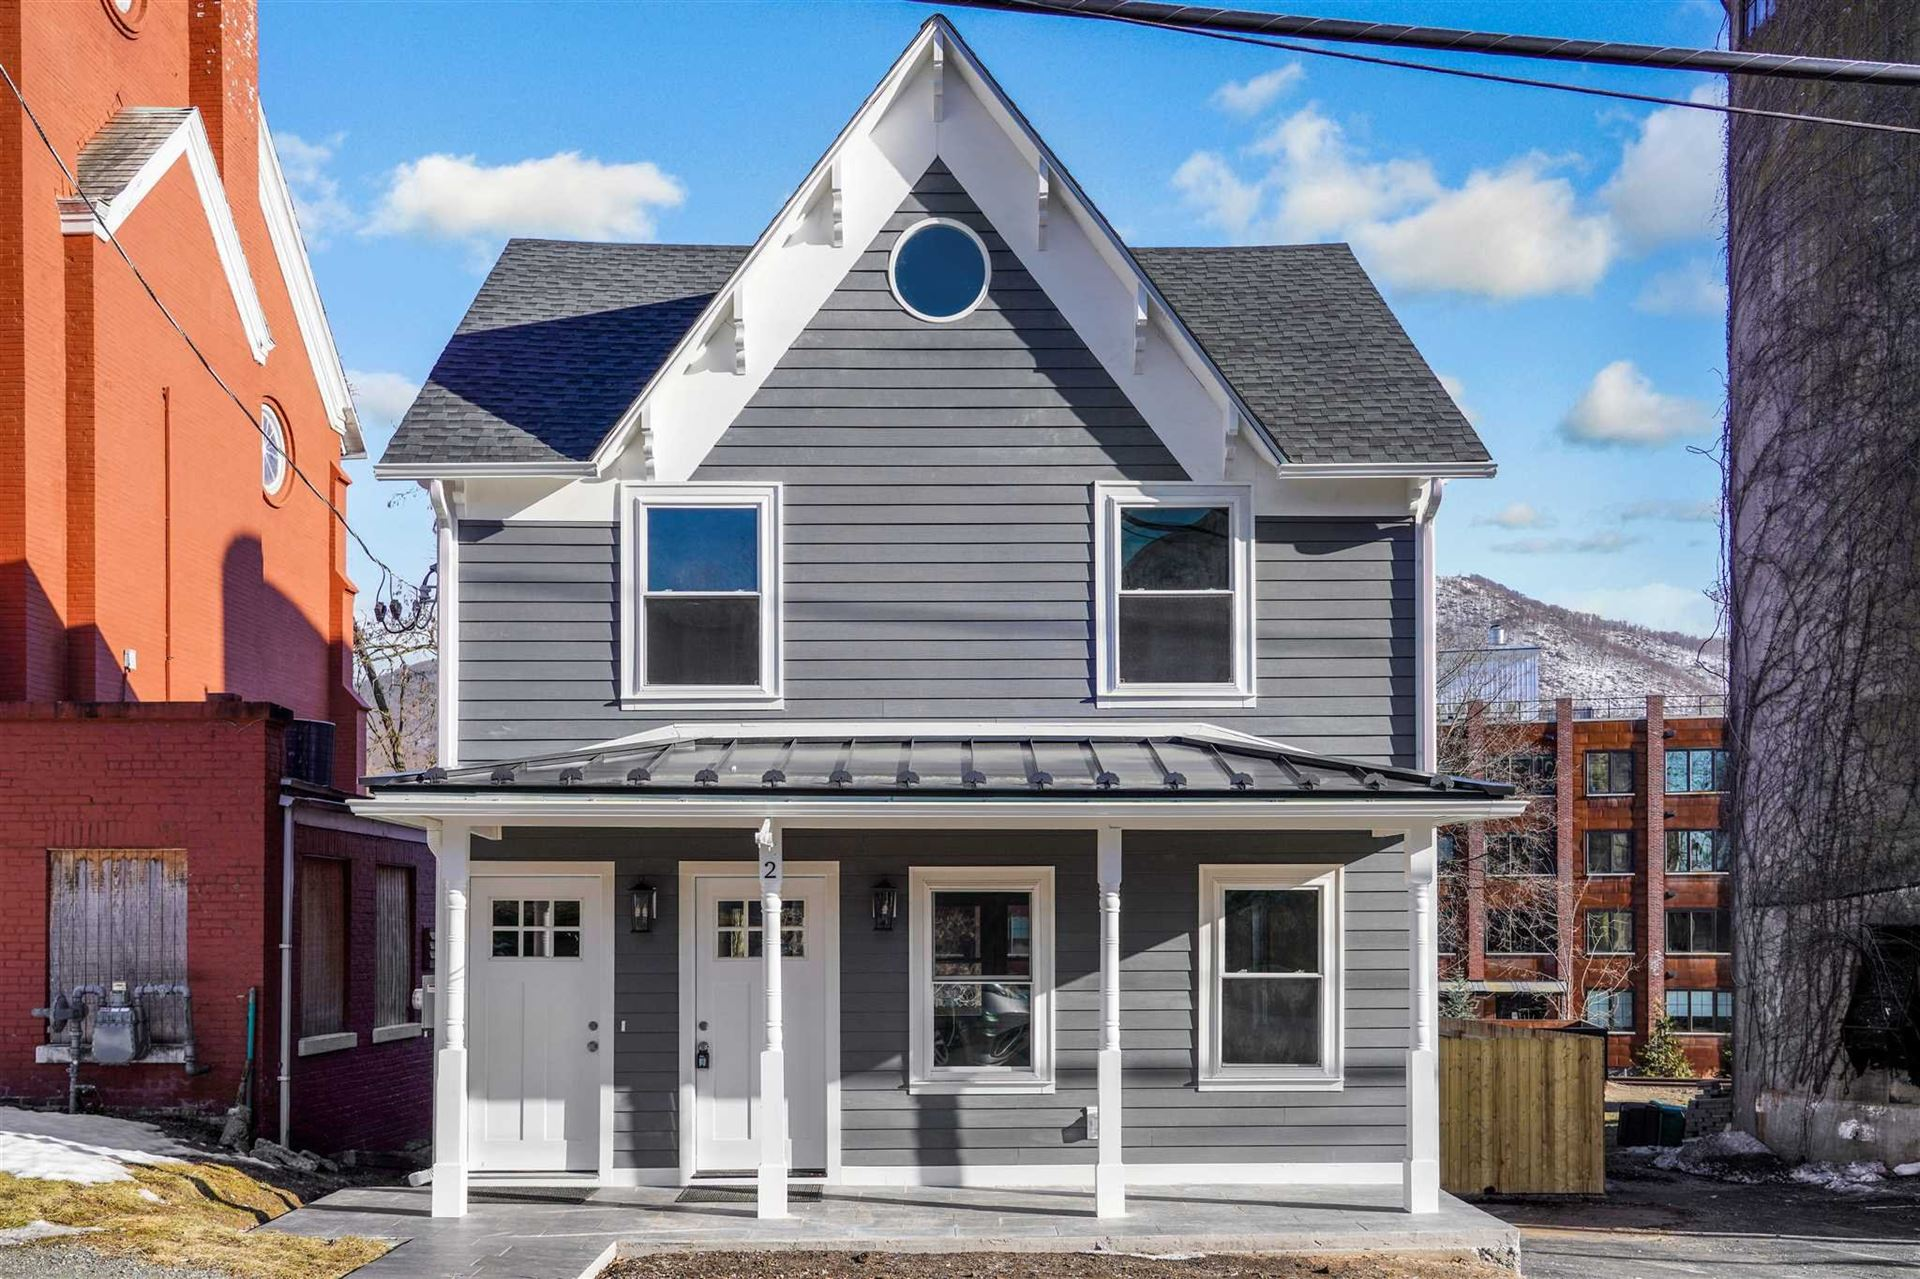 2 TIORONDA AVE, Beacon, NY 12508 - #: 398621